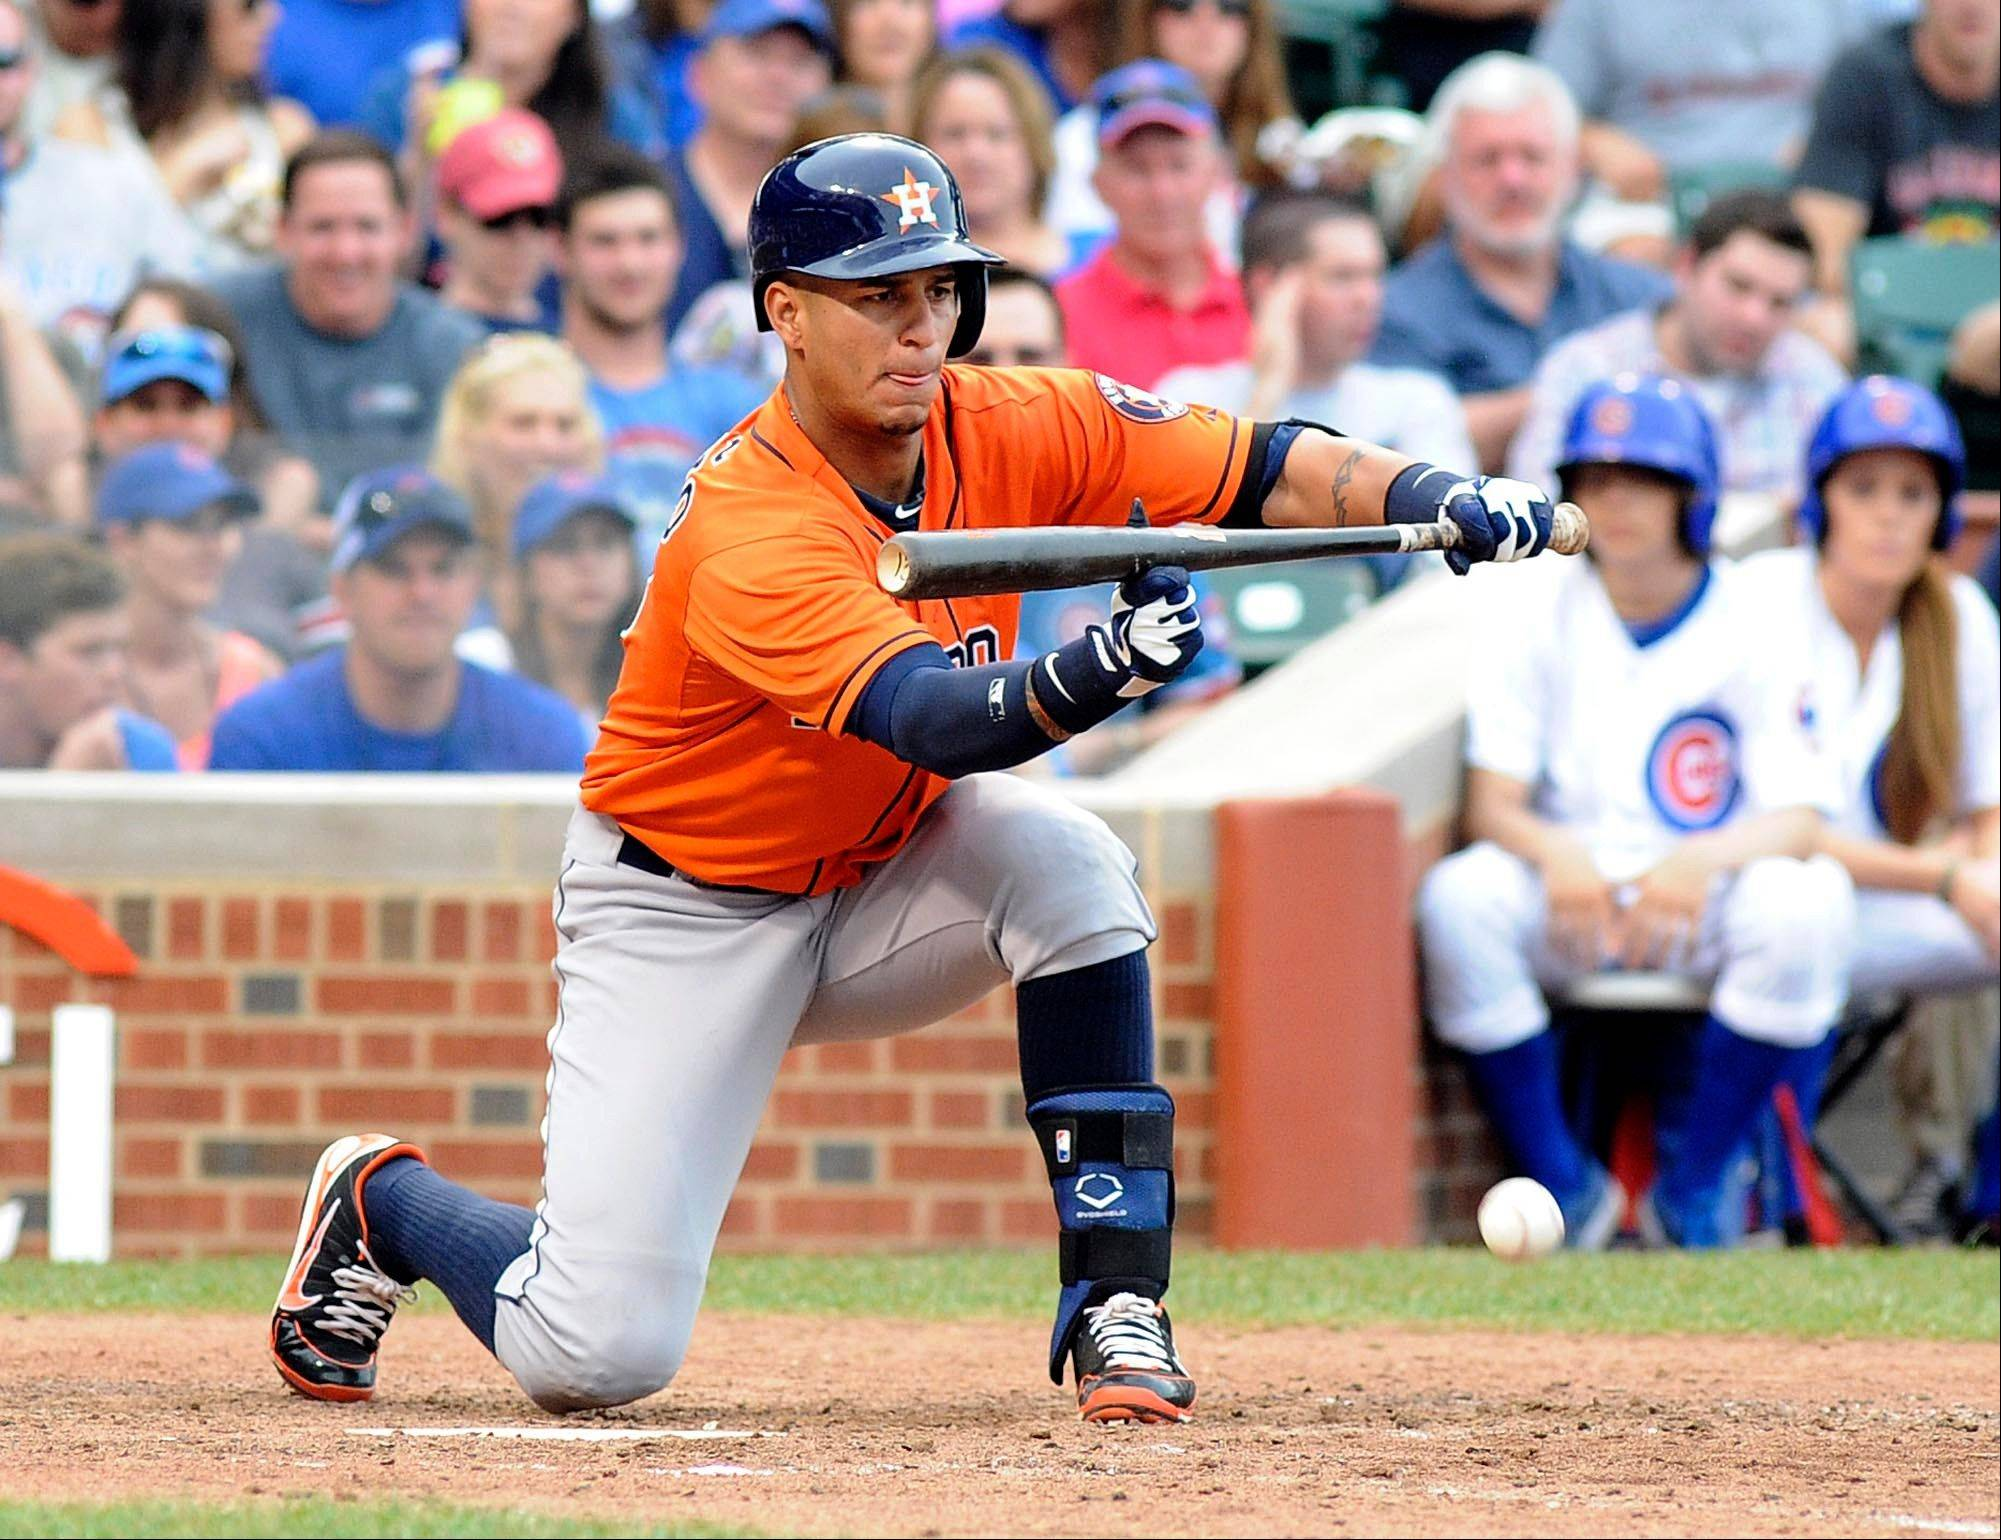 Houston Astros' Ronny Cedeno puts down a bunt, scoring the winning run, in the ninth inning of a baseball game against the Chicago Cubs, Saturday June 22, 2013, in Chicago, Ill. The Astros won 4-3.